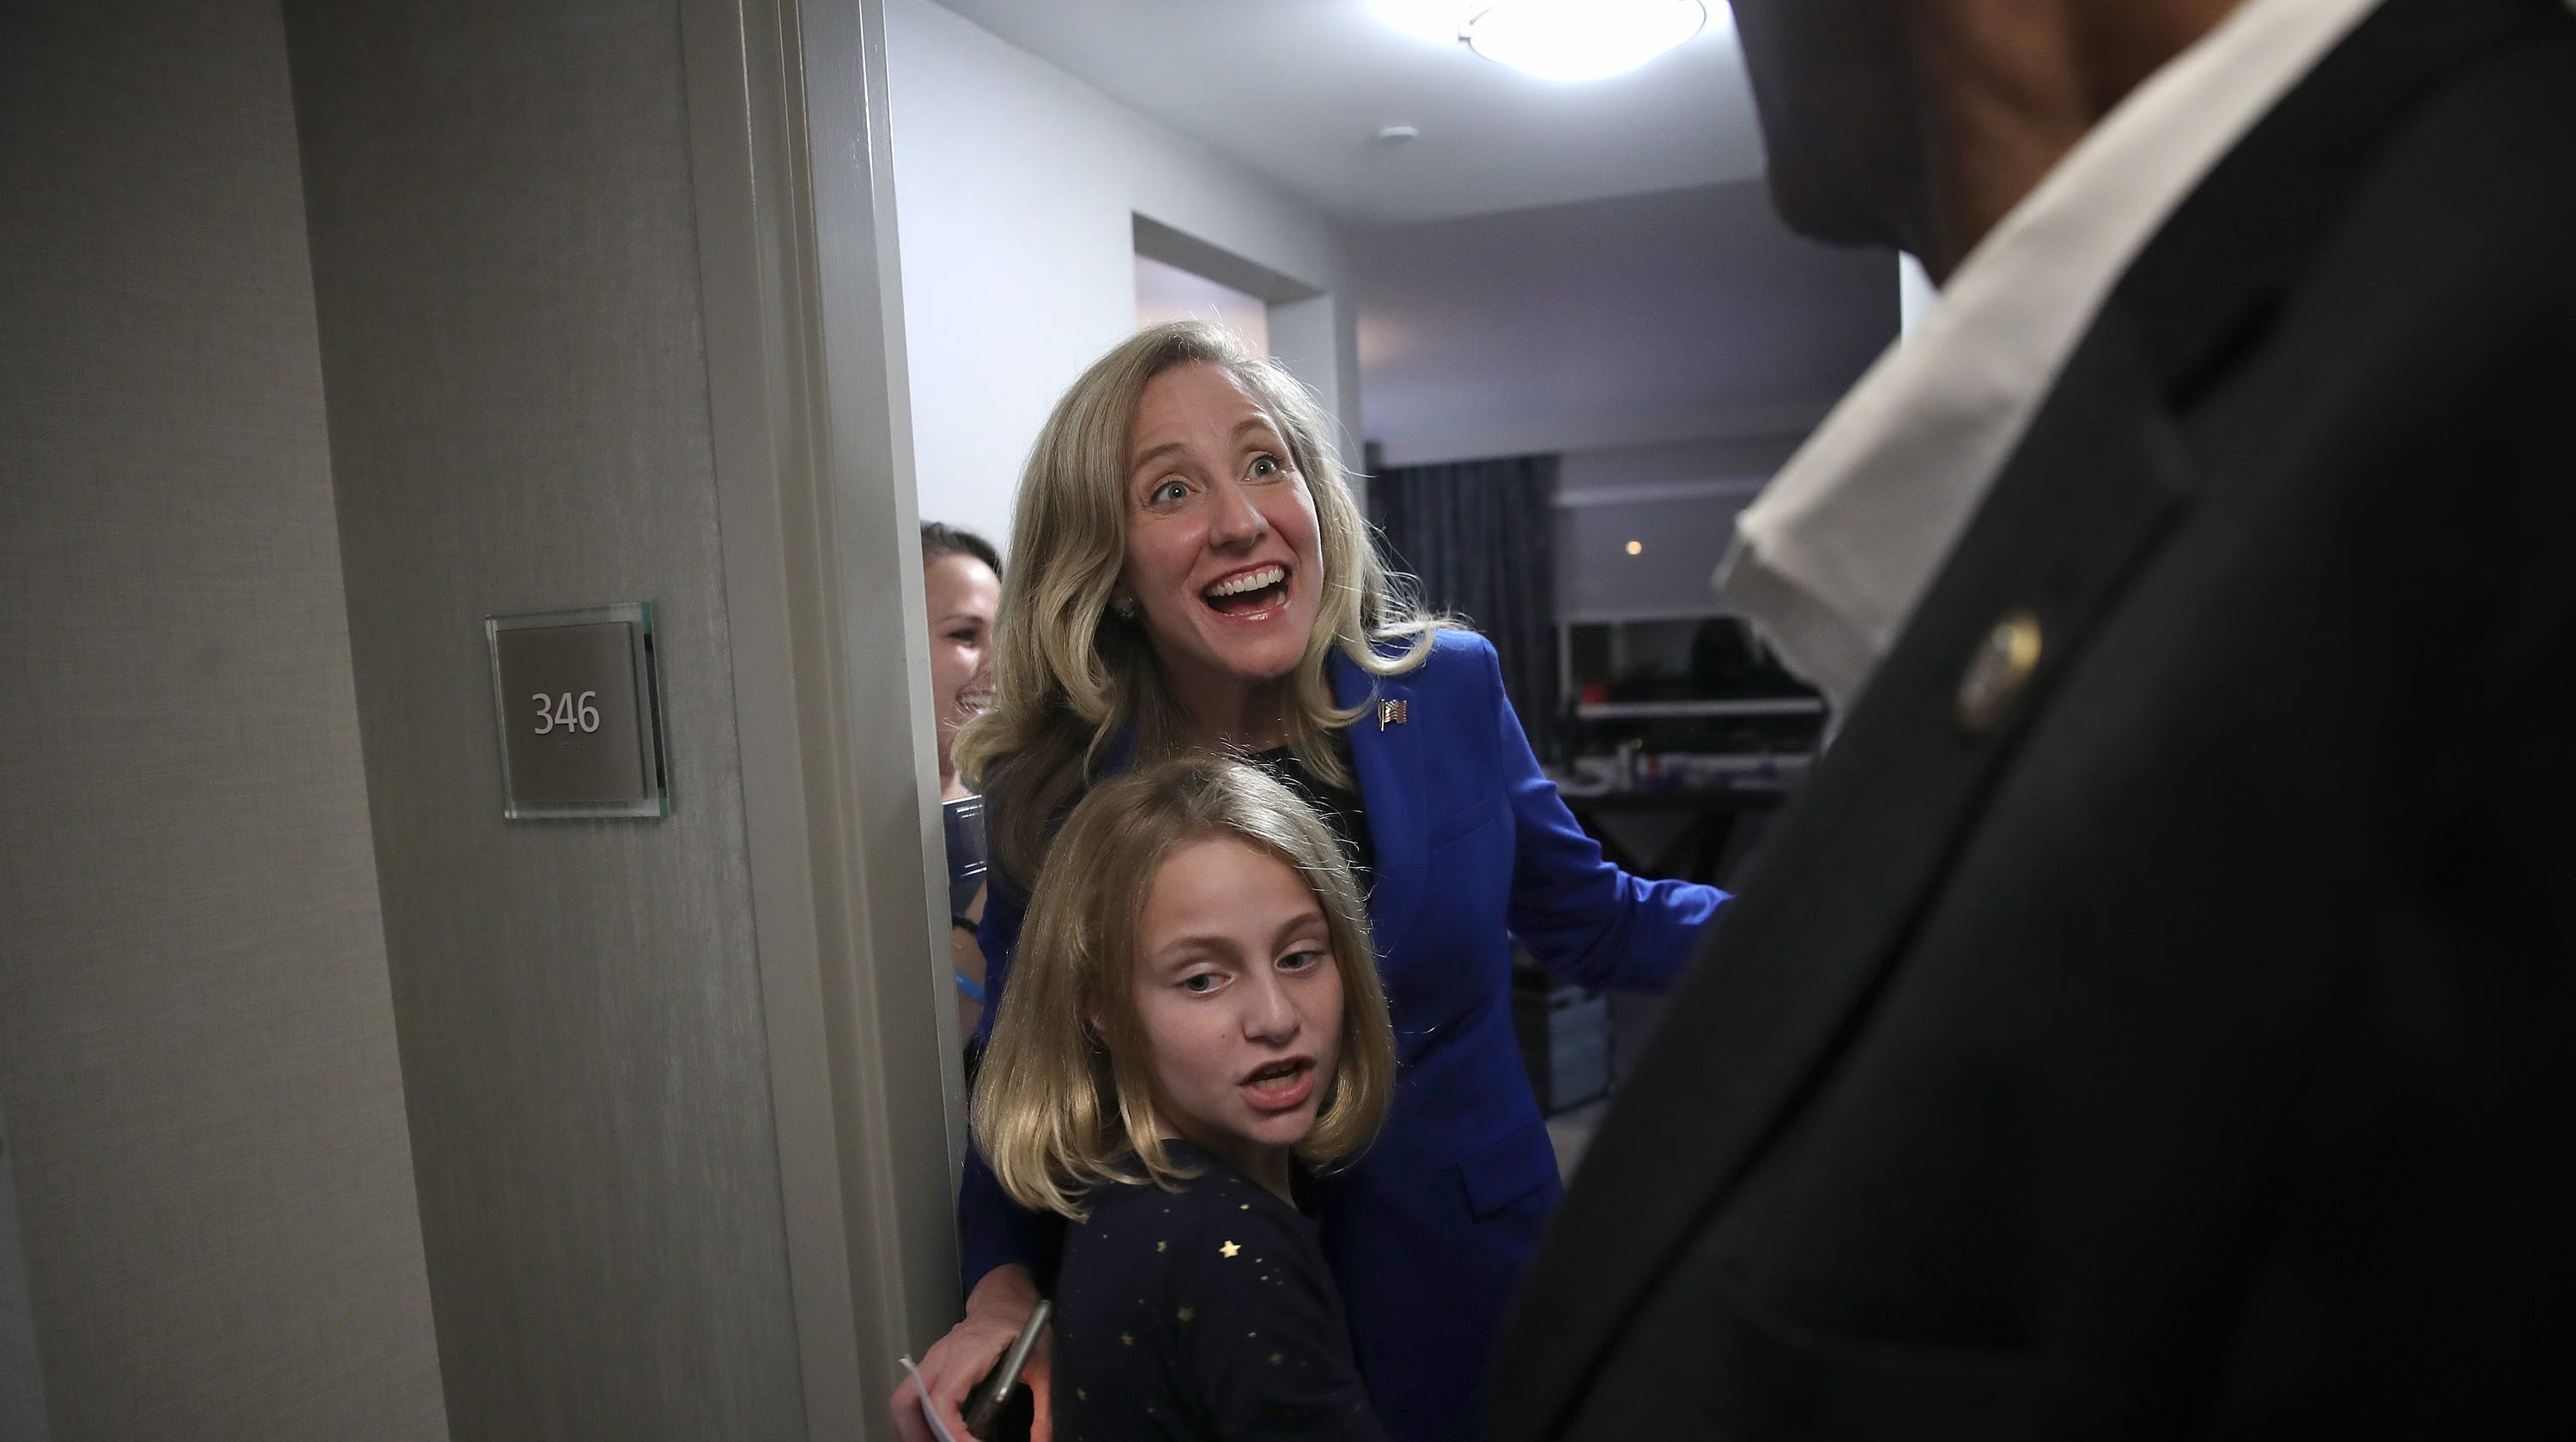 Cookie ethics: Congresswoman-elect asks if she's still allowed to sell Girl Scout cookies